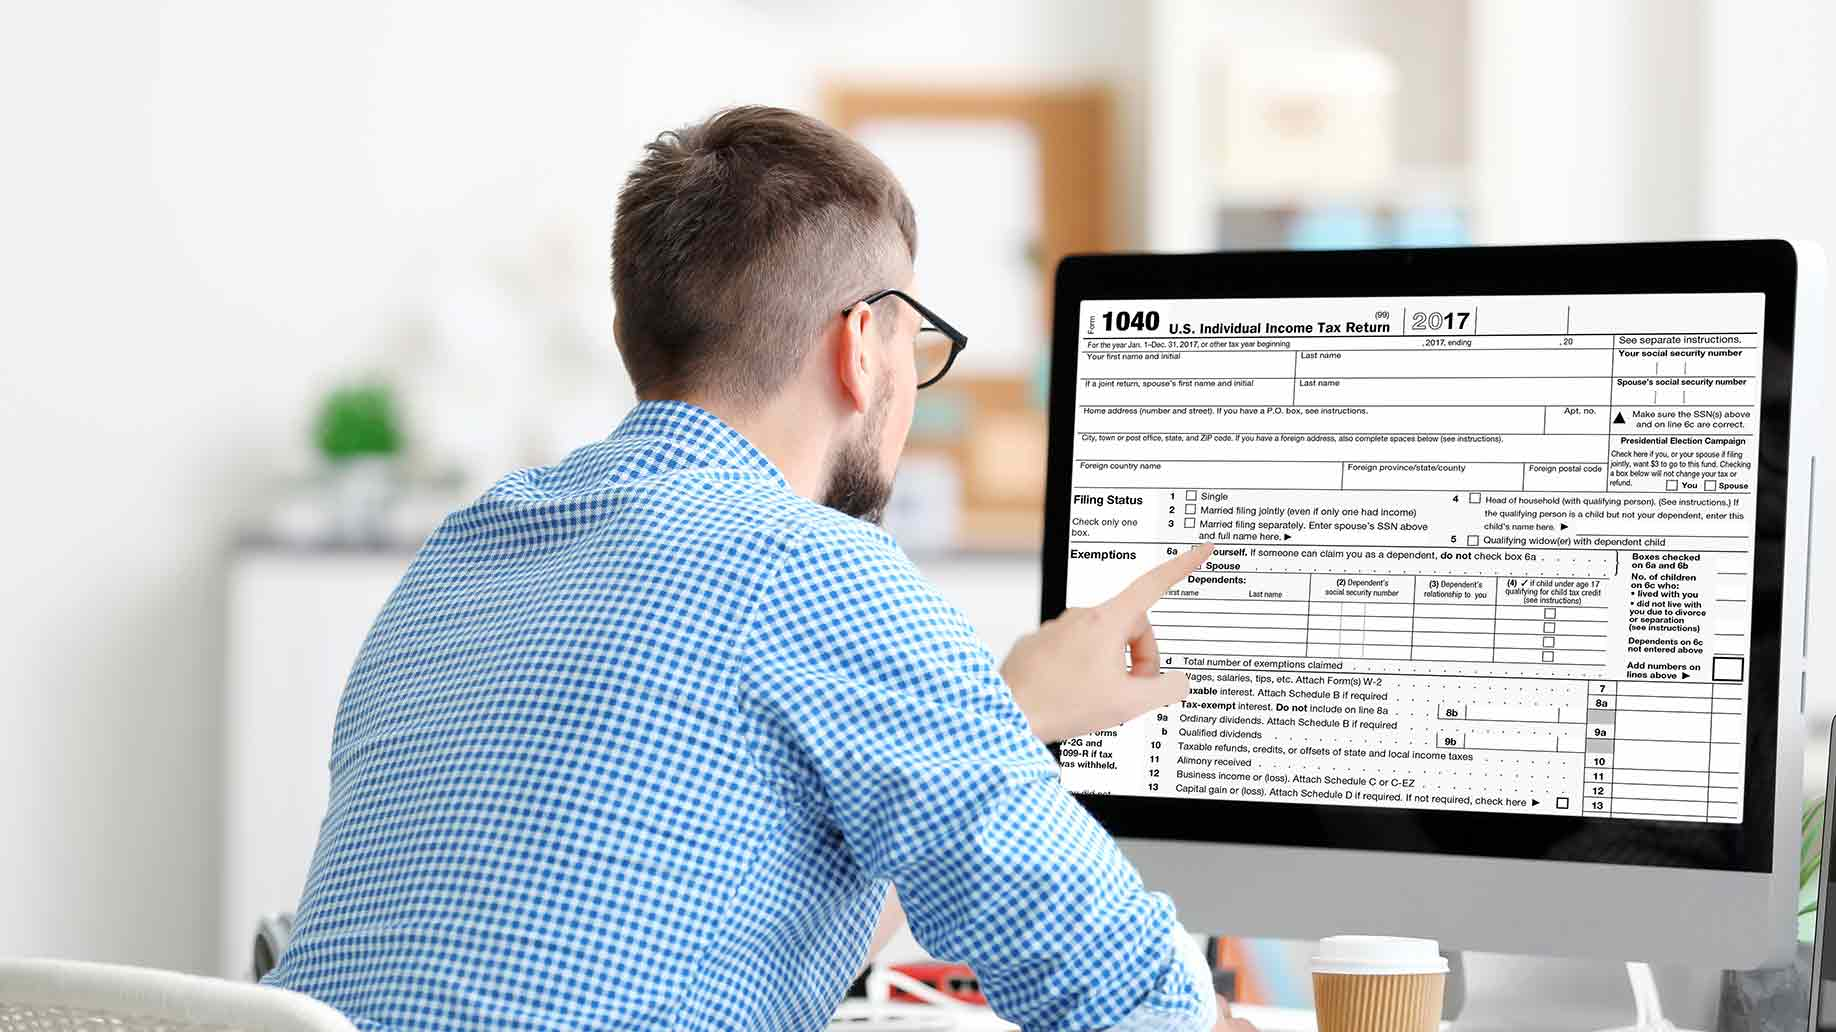 man filing individual income tax return form at table